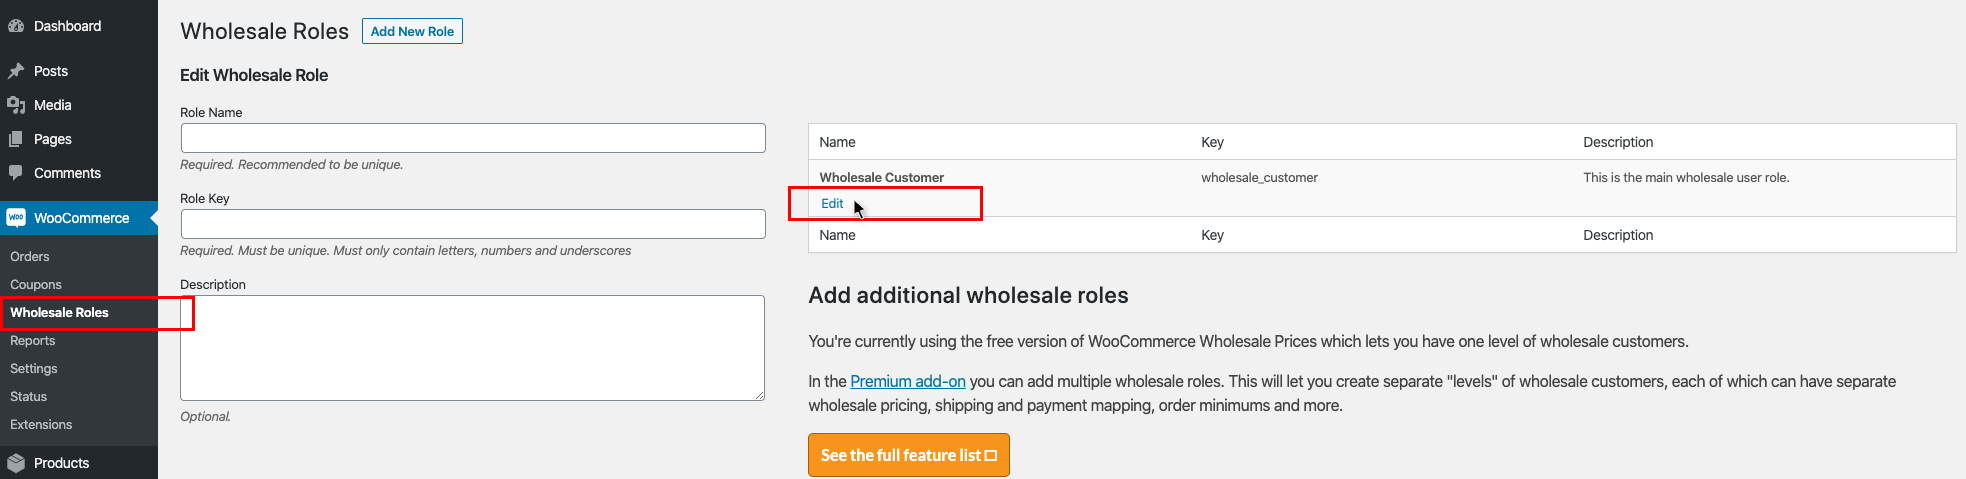 WooCommerce Wholesale Roles